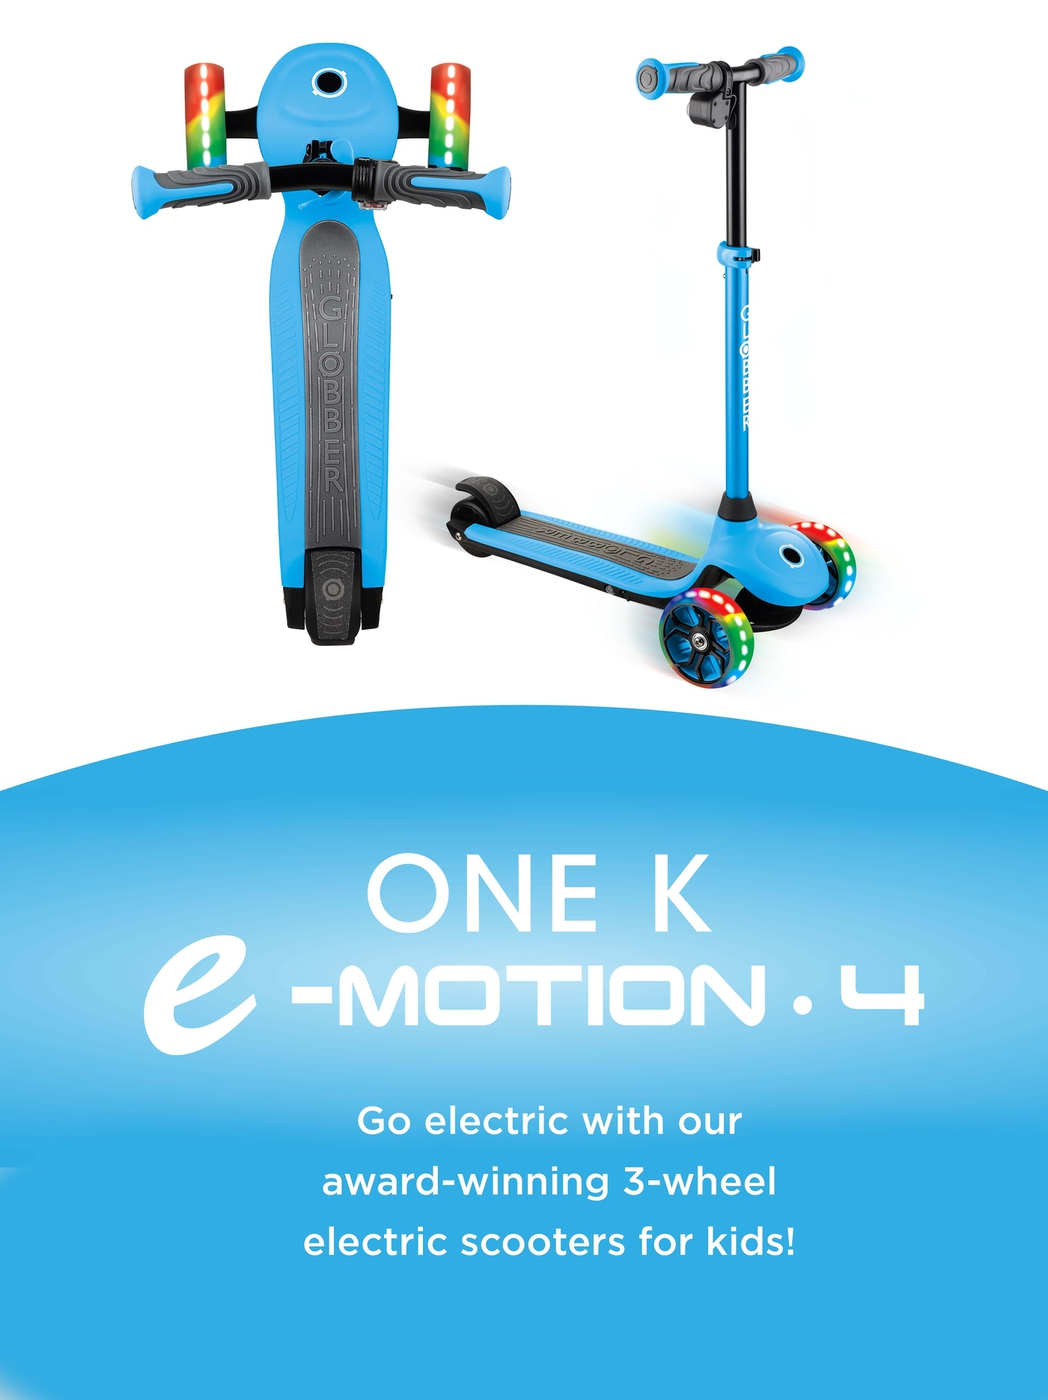 Globber-ONE-K-E-MOTION-4-award-winning-3-wheel-electric-scooter-for-kids